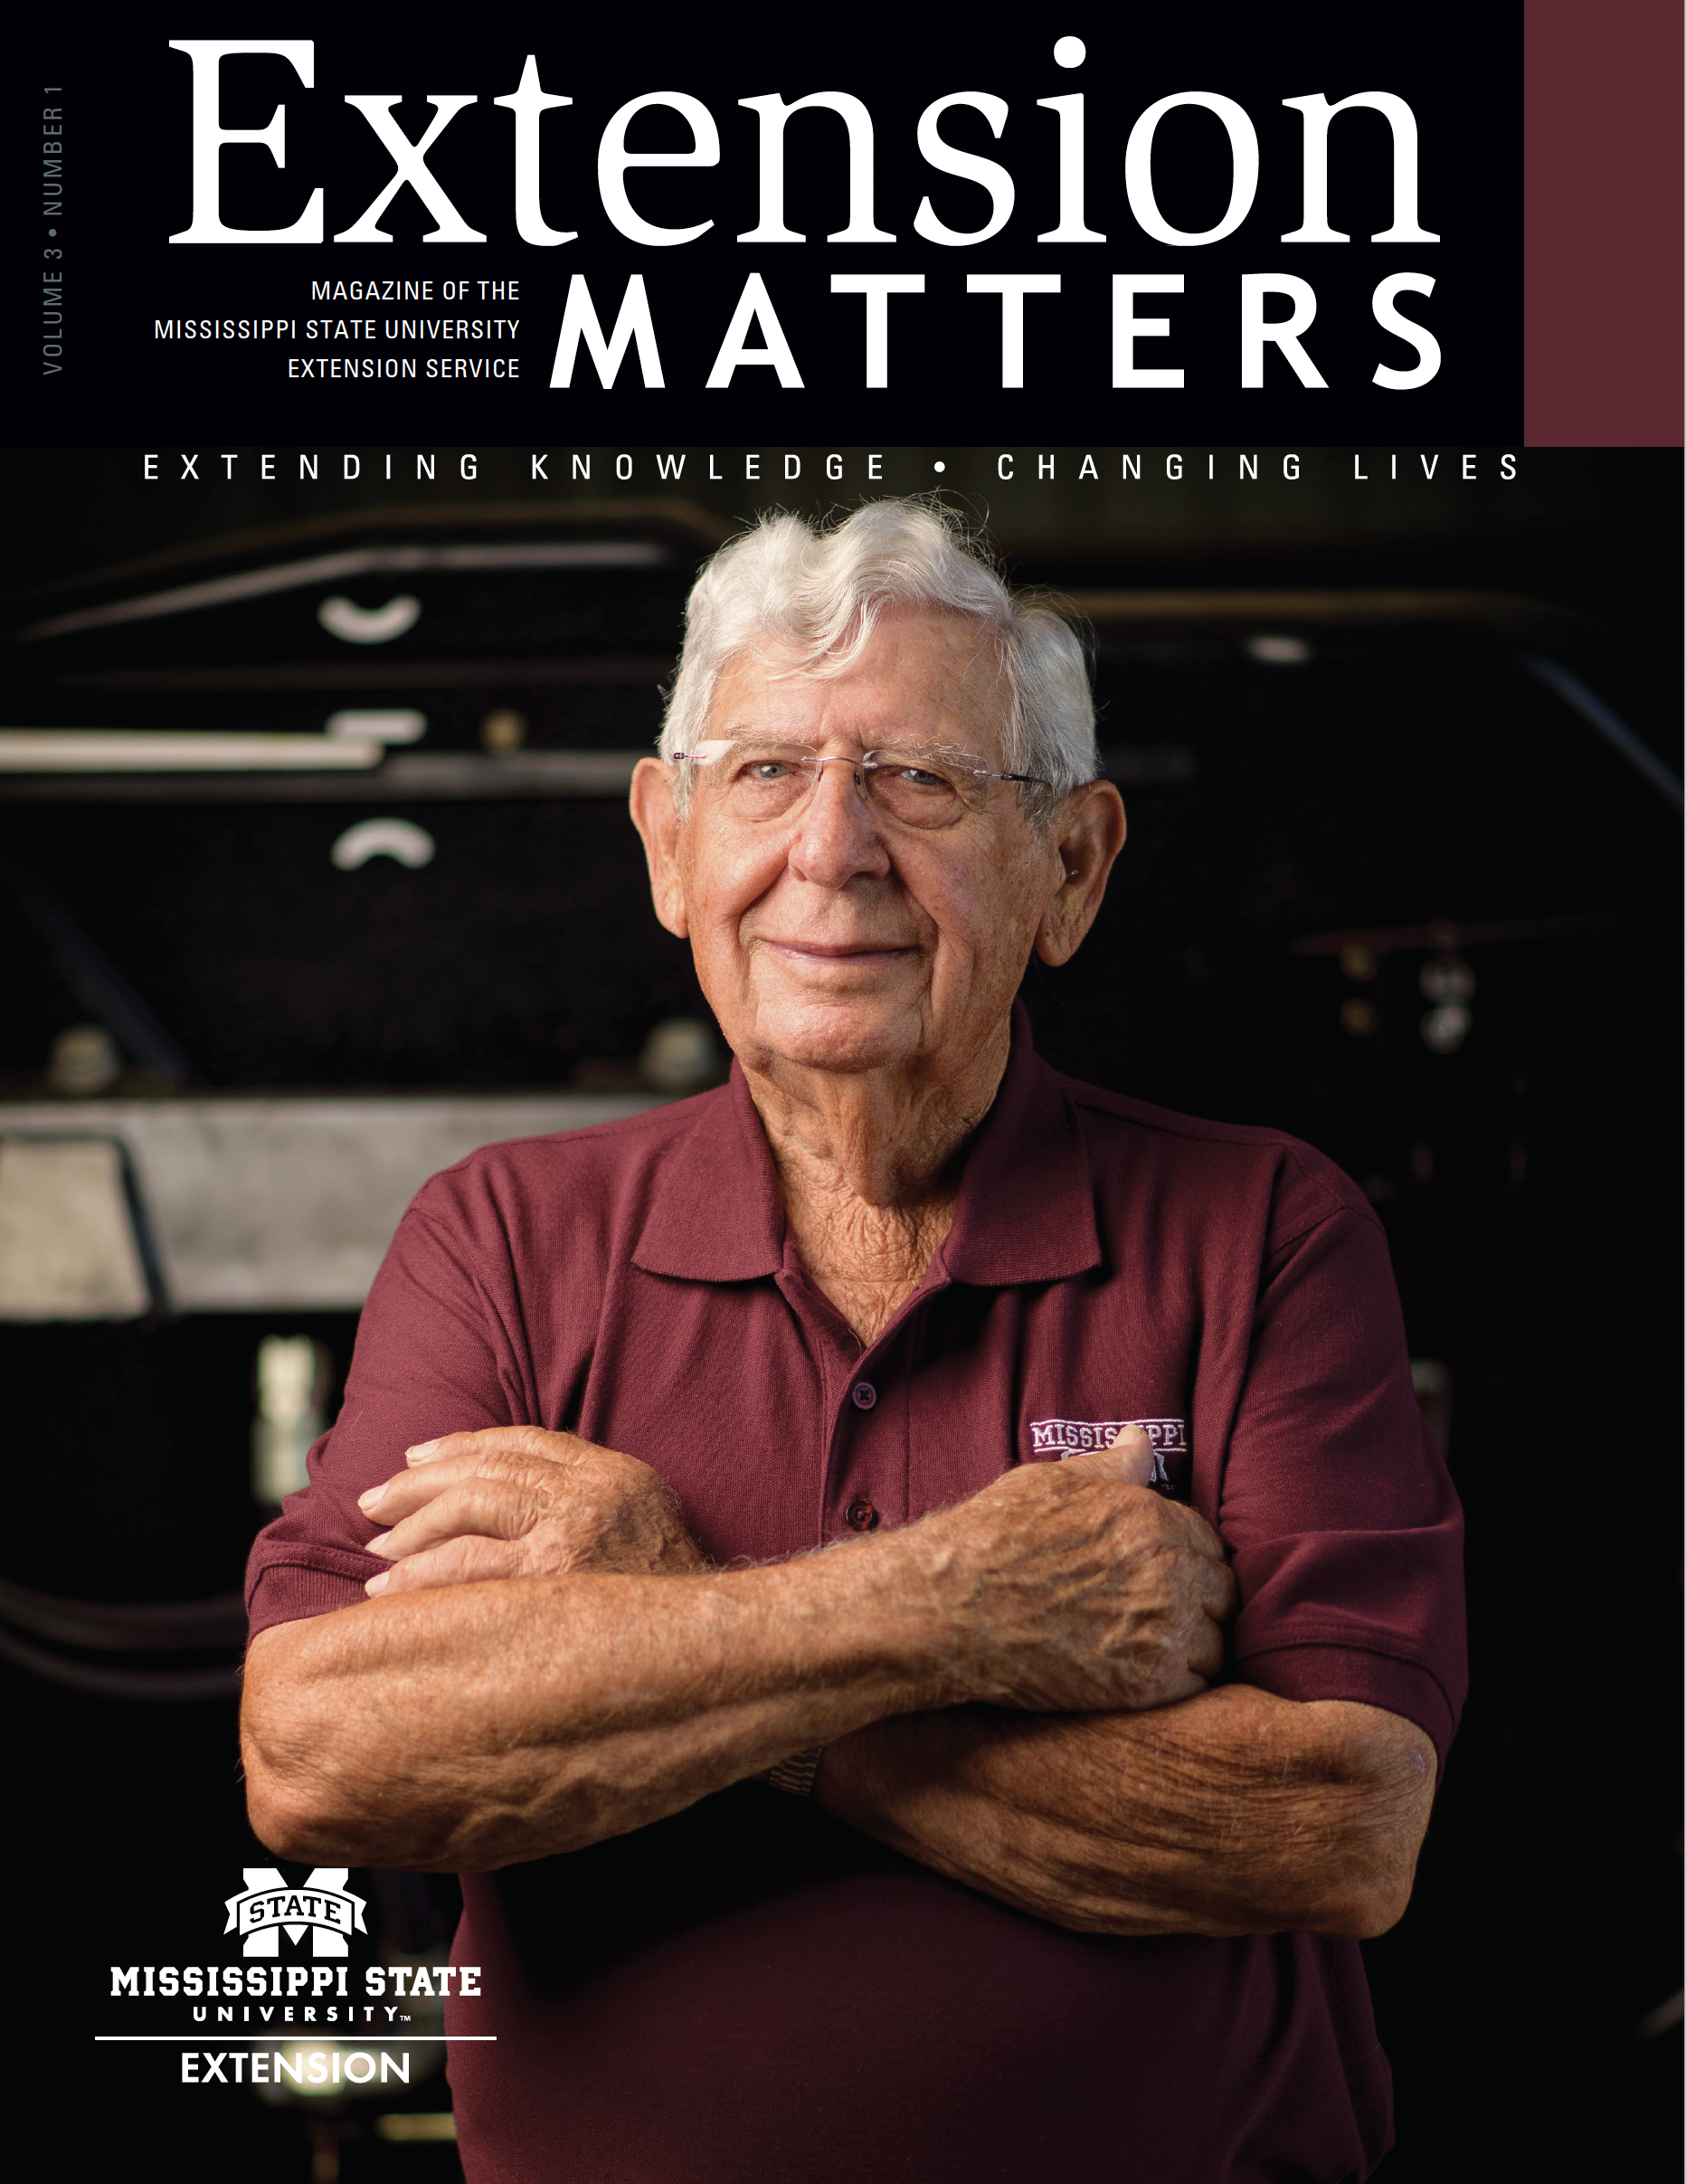 Extension Matters cover volume 3 number 1.